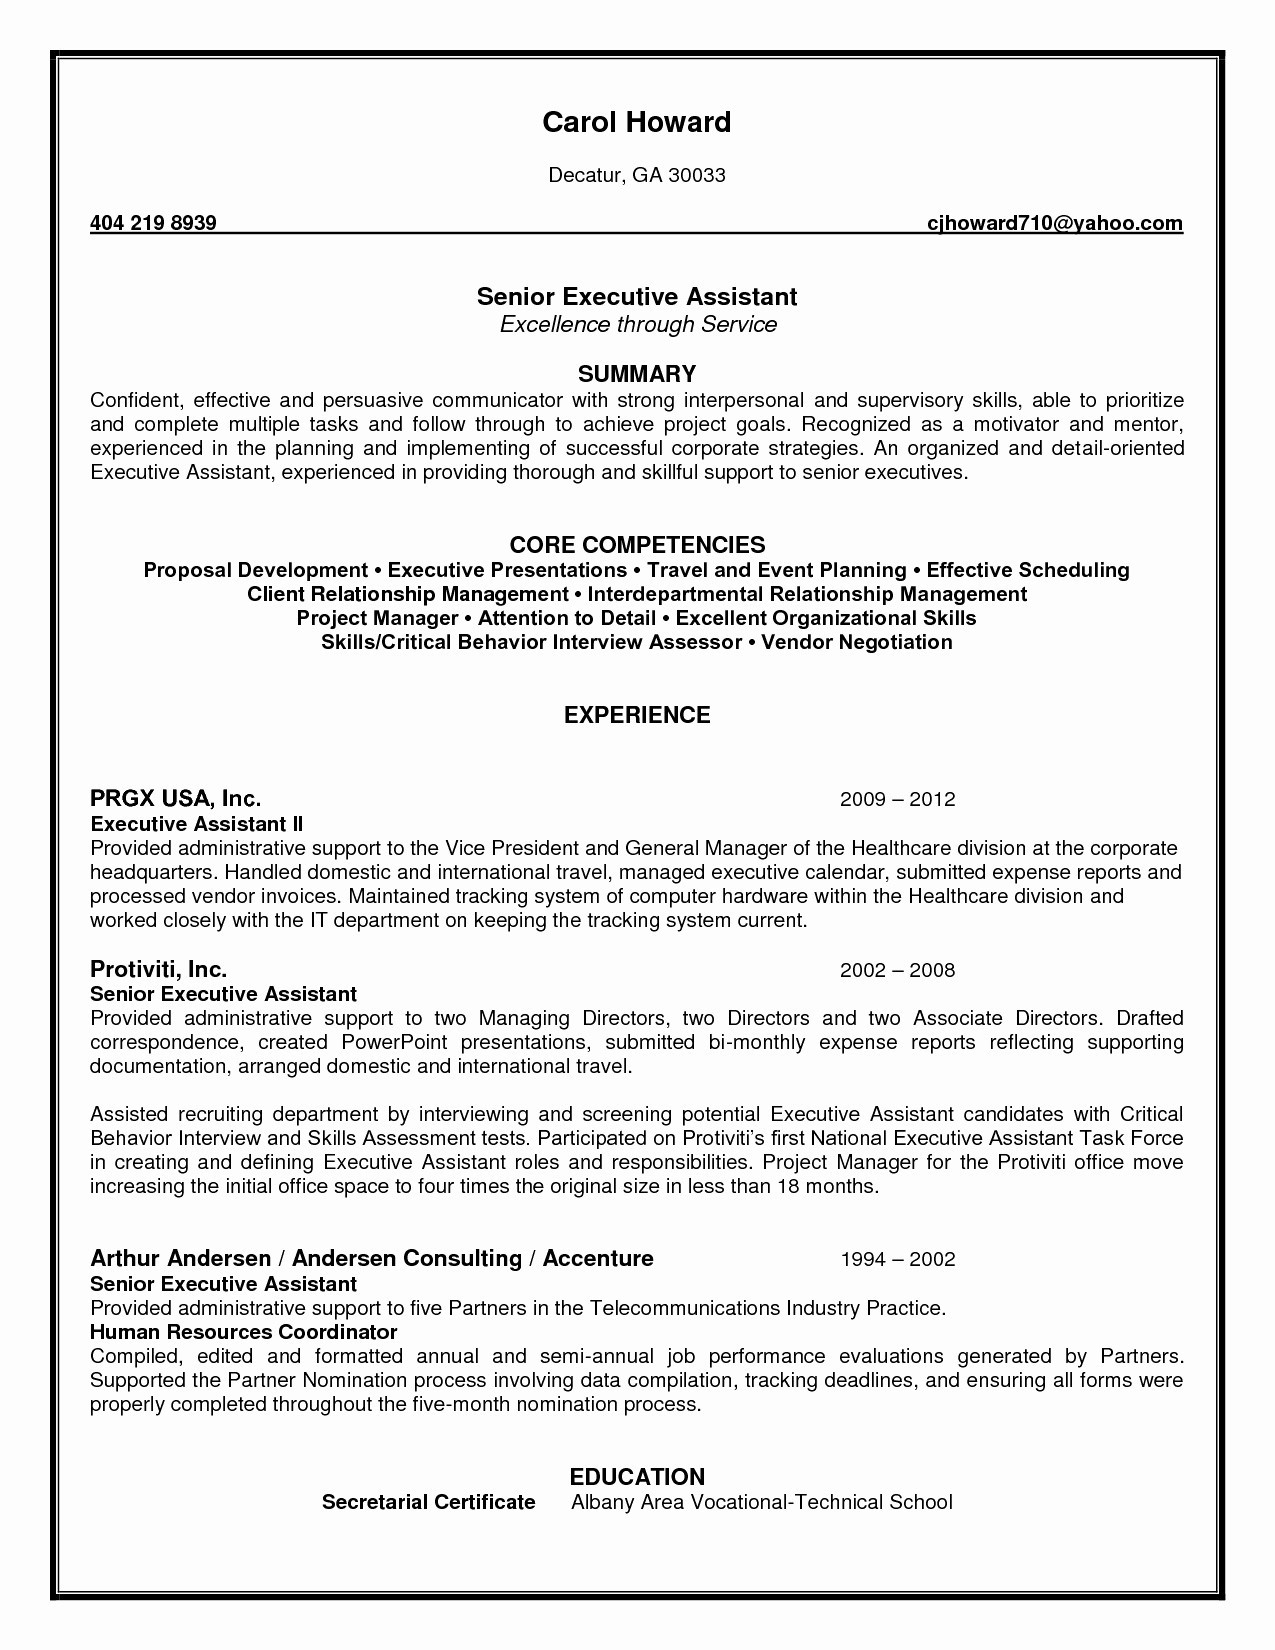 executive assistant resume Collection-Executive assistant Resumes Unique Resume Template Executive assistant Beautiful Ssis Resume 0d Executive assistant Resumes 16-l